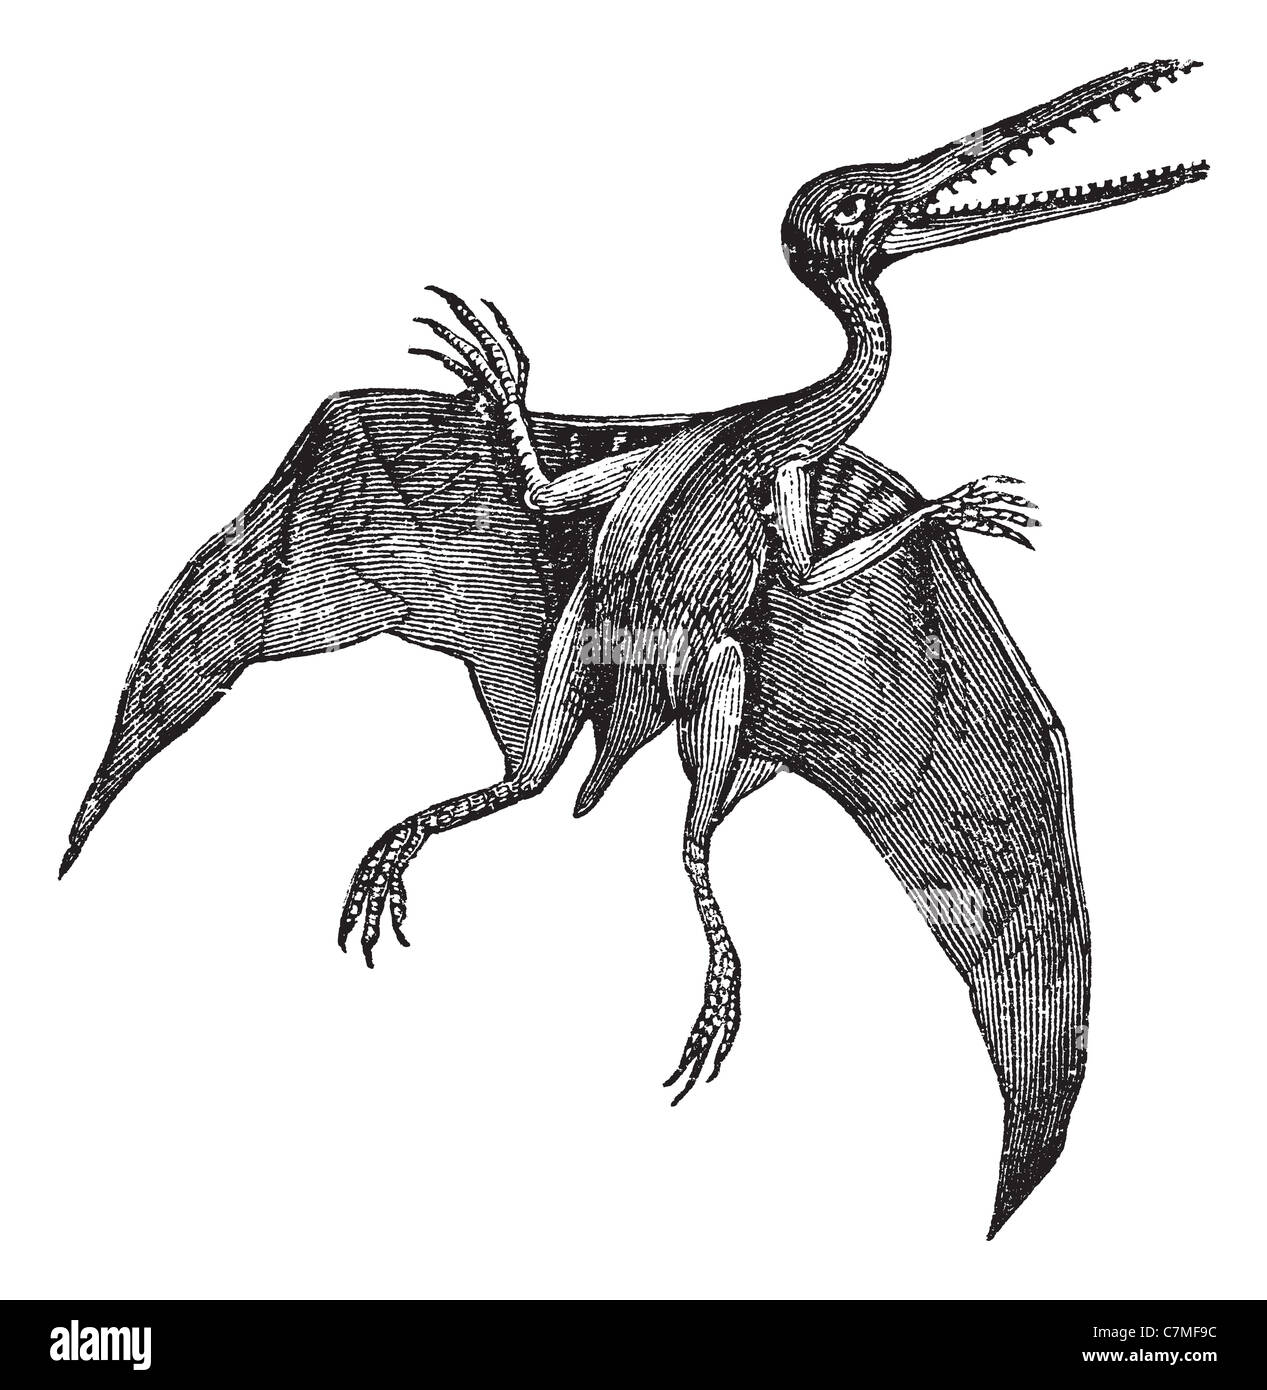 Pterodactylus vintage engraving. Old engraved illustration of Pterodactylus isolated on a white background. - Stock Image